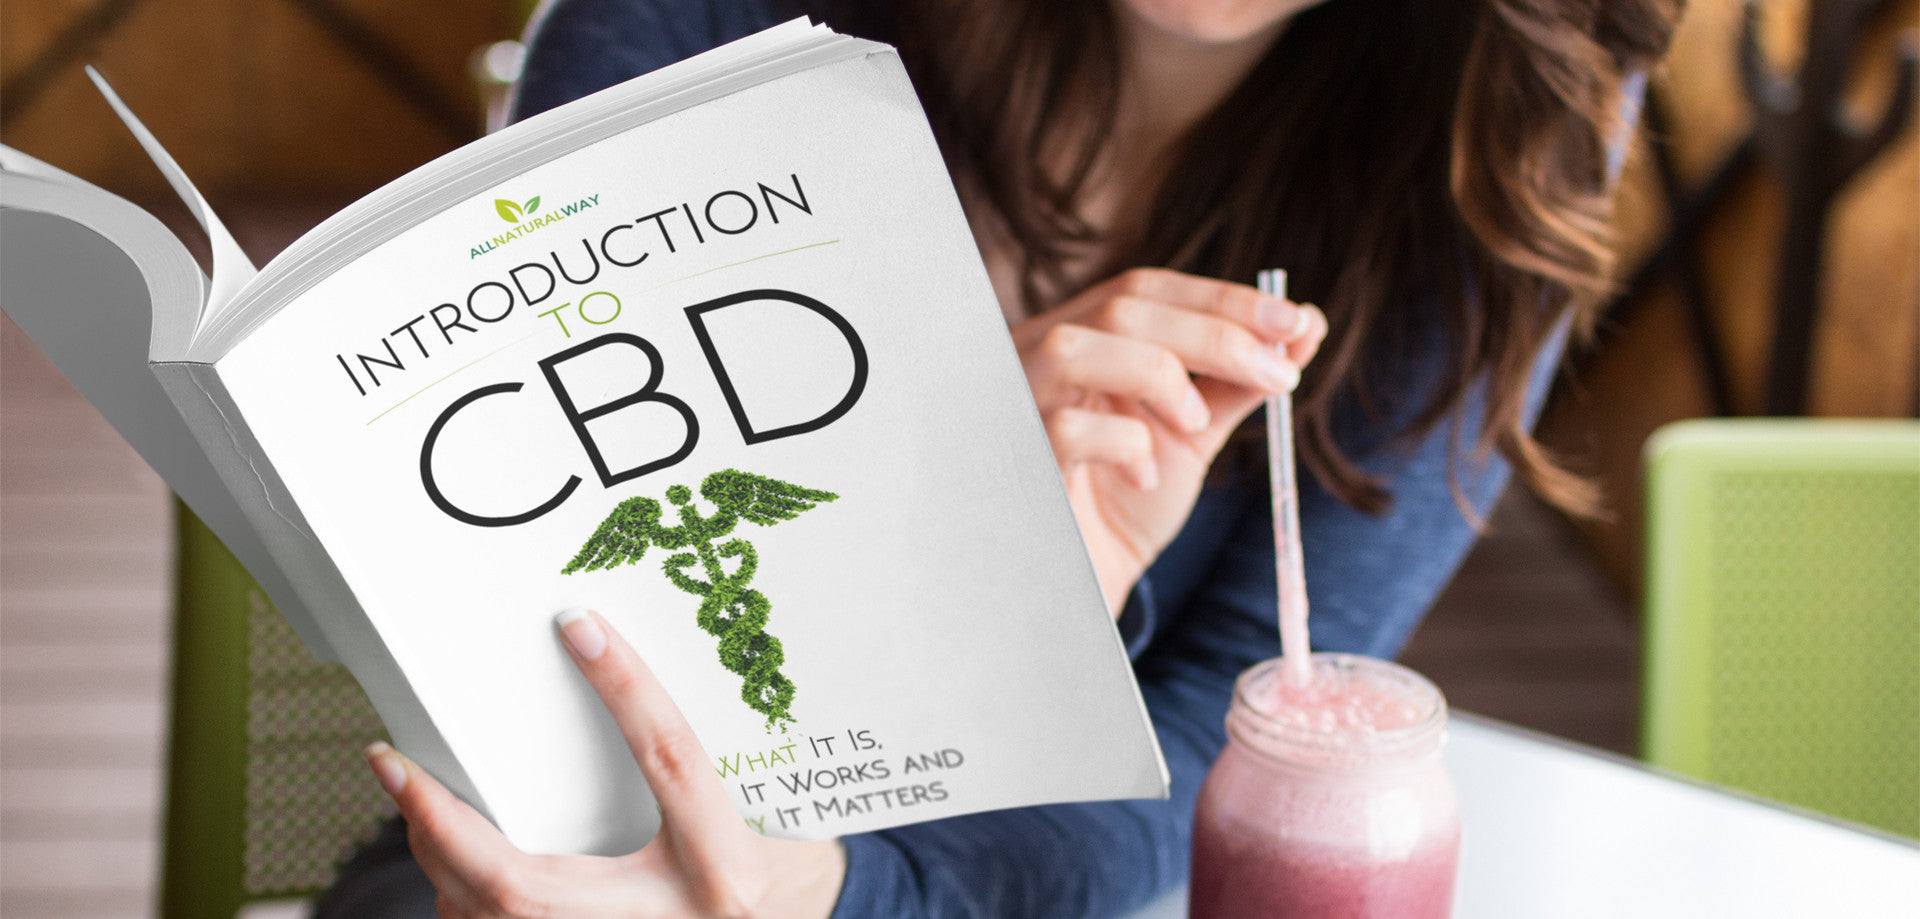 INTRO TO CBD